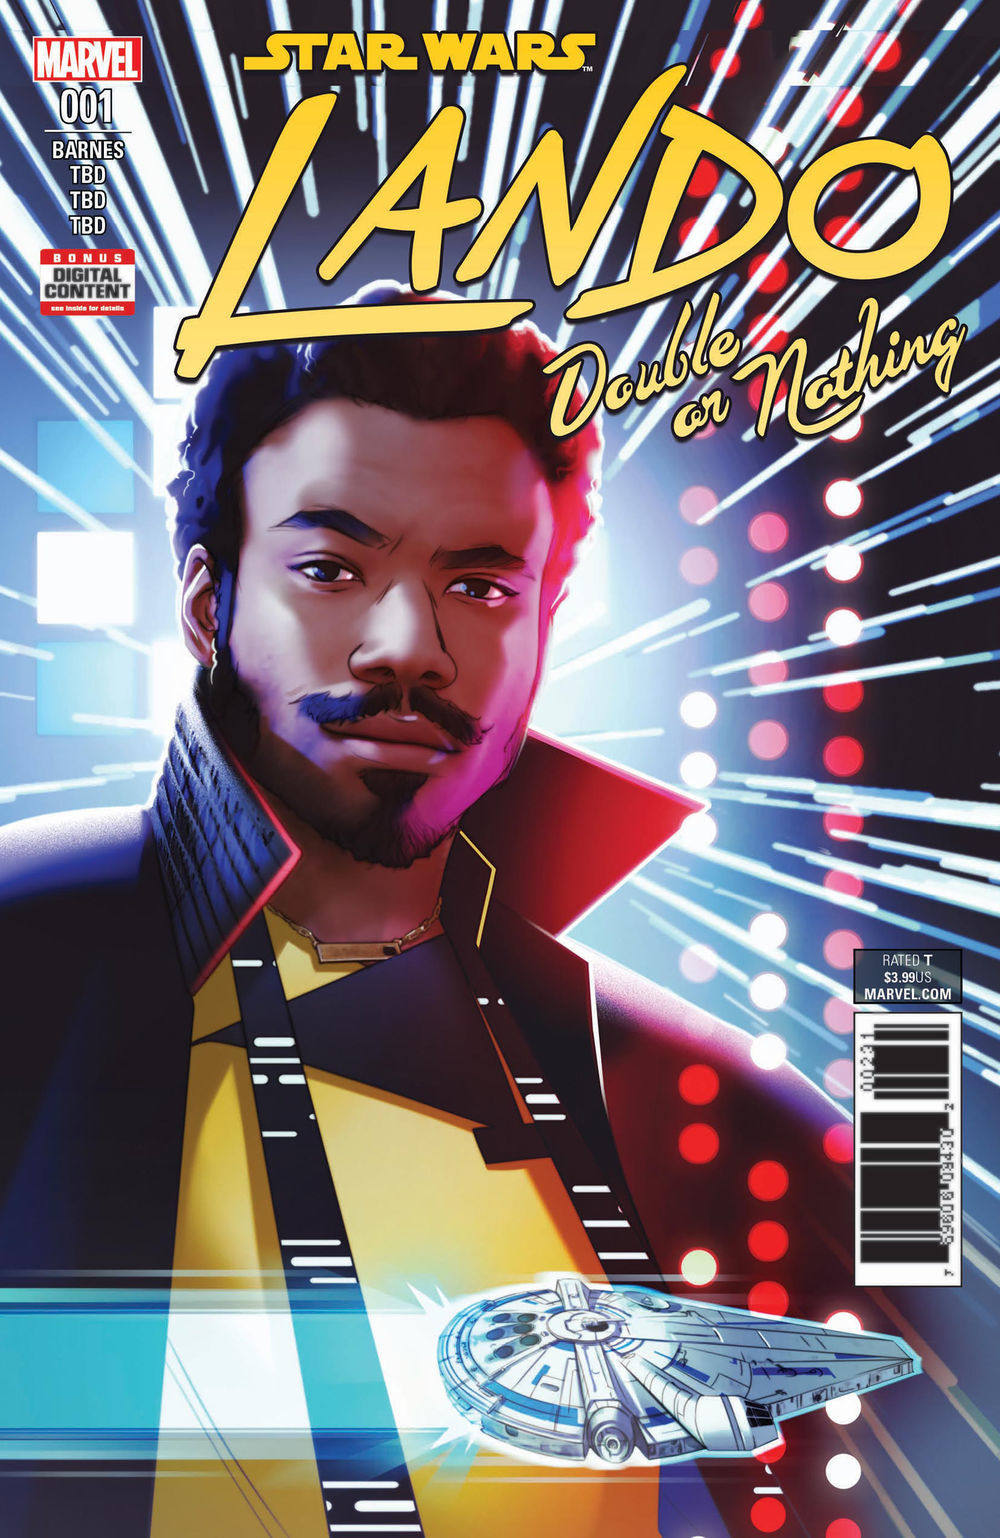 Star Wars: Lando: Double or Nothing artwork